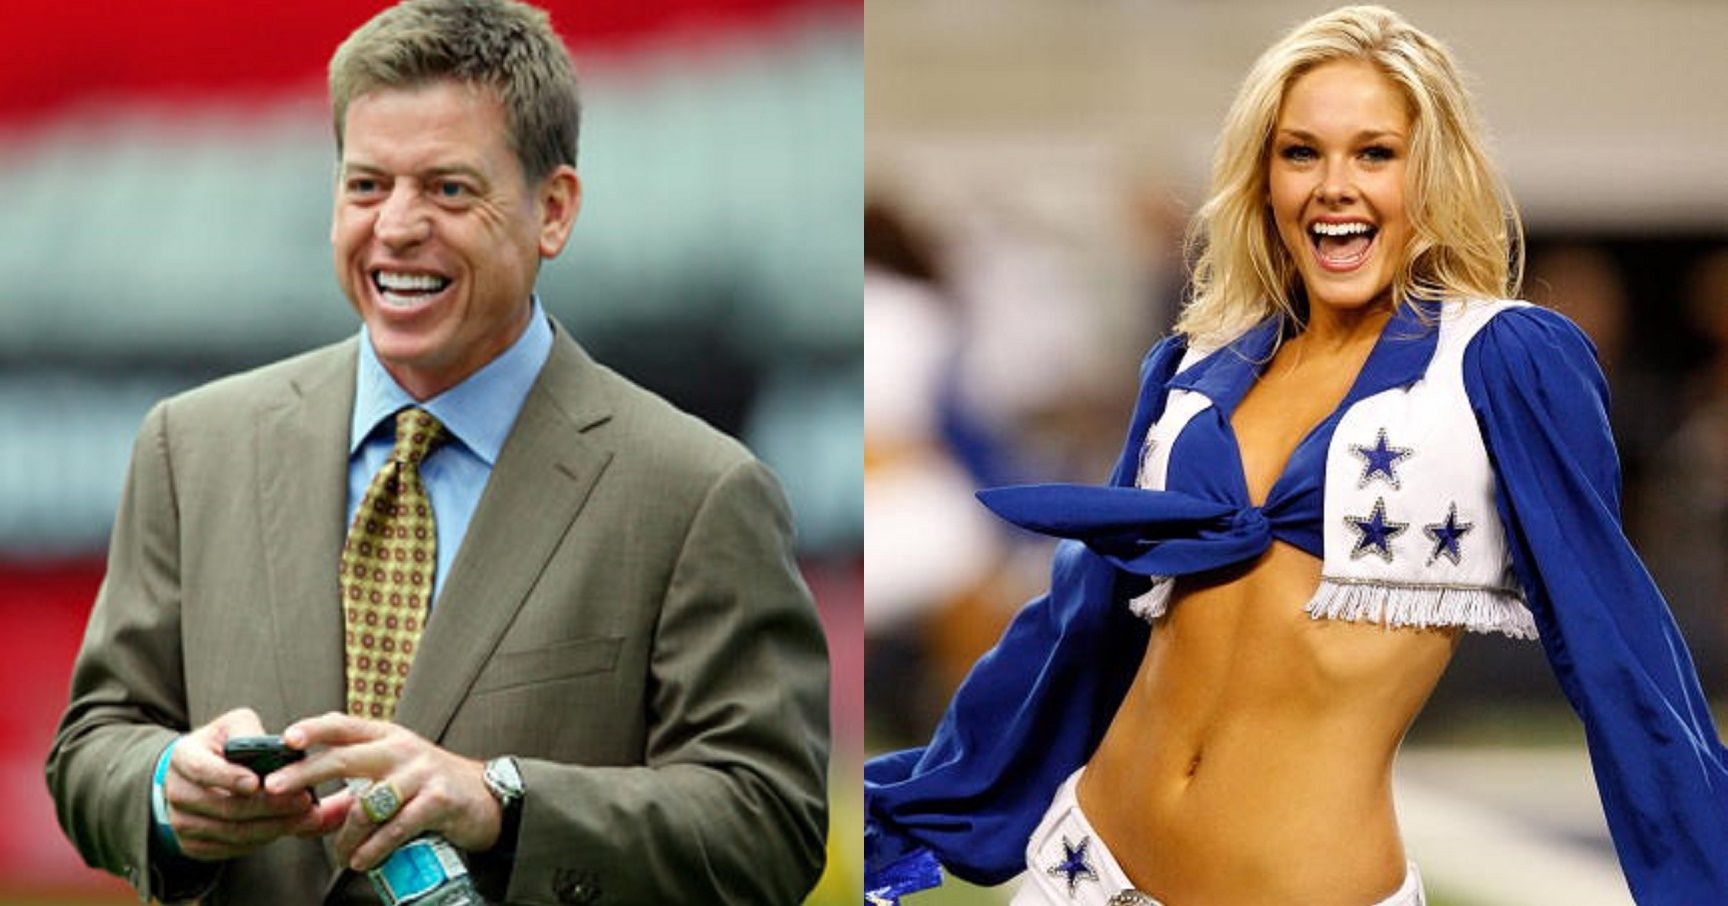 Can cheerleaders dating nfl players